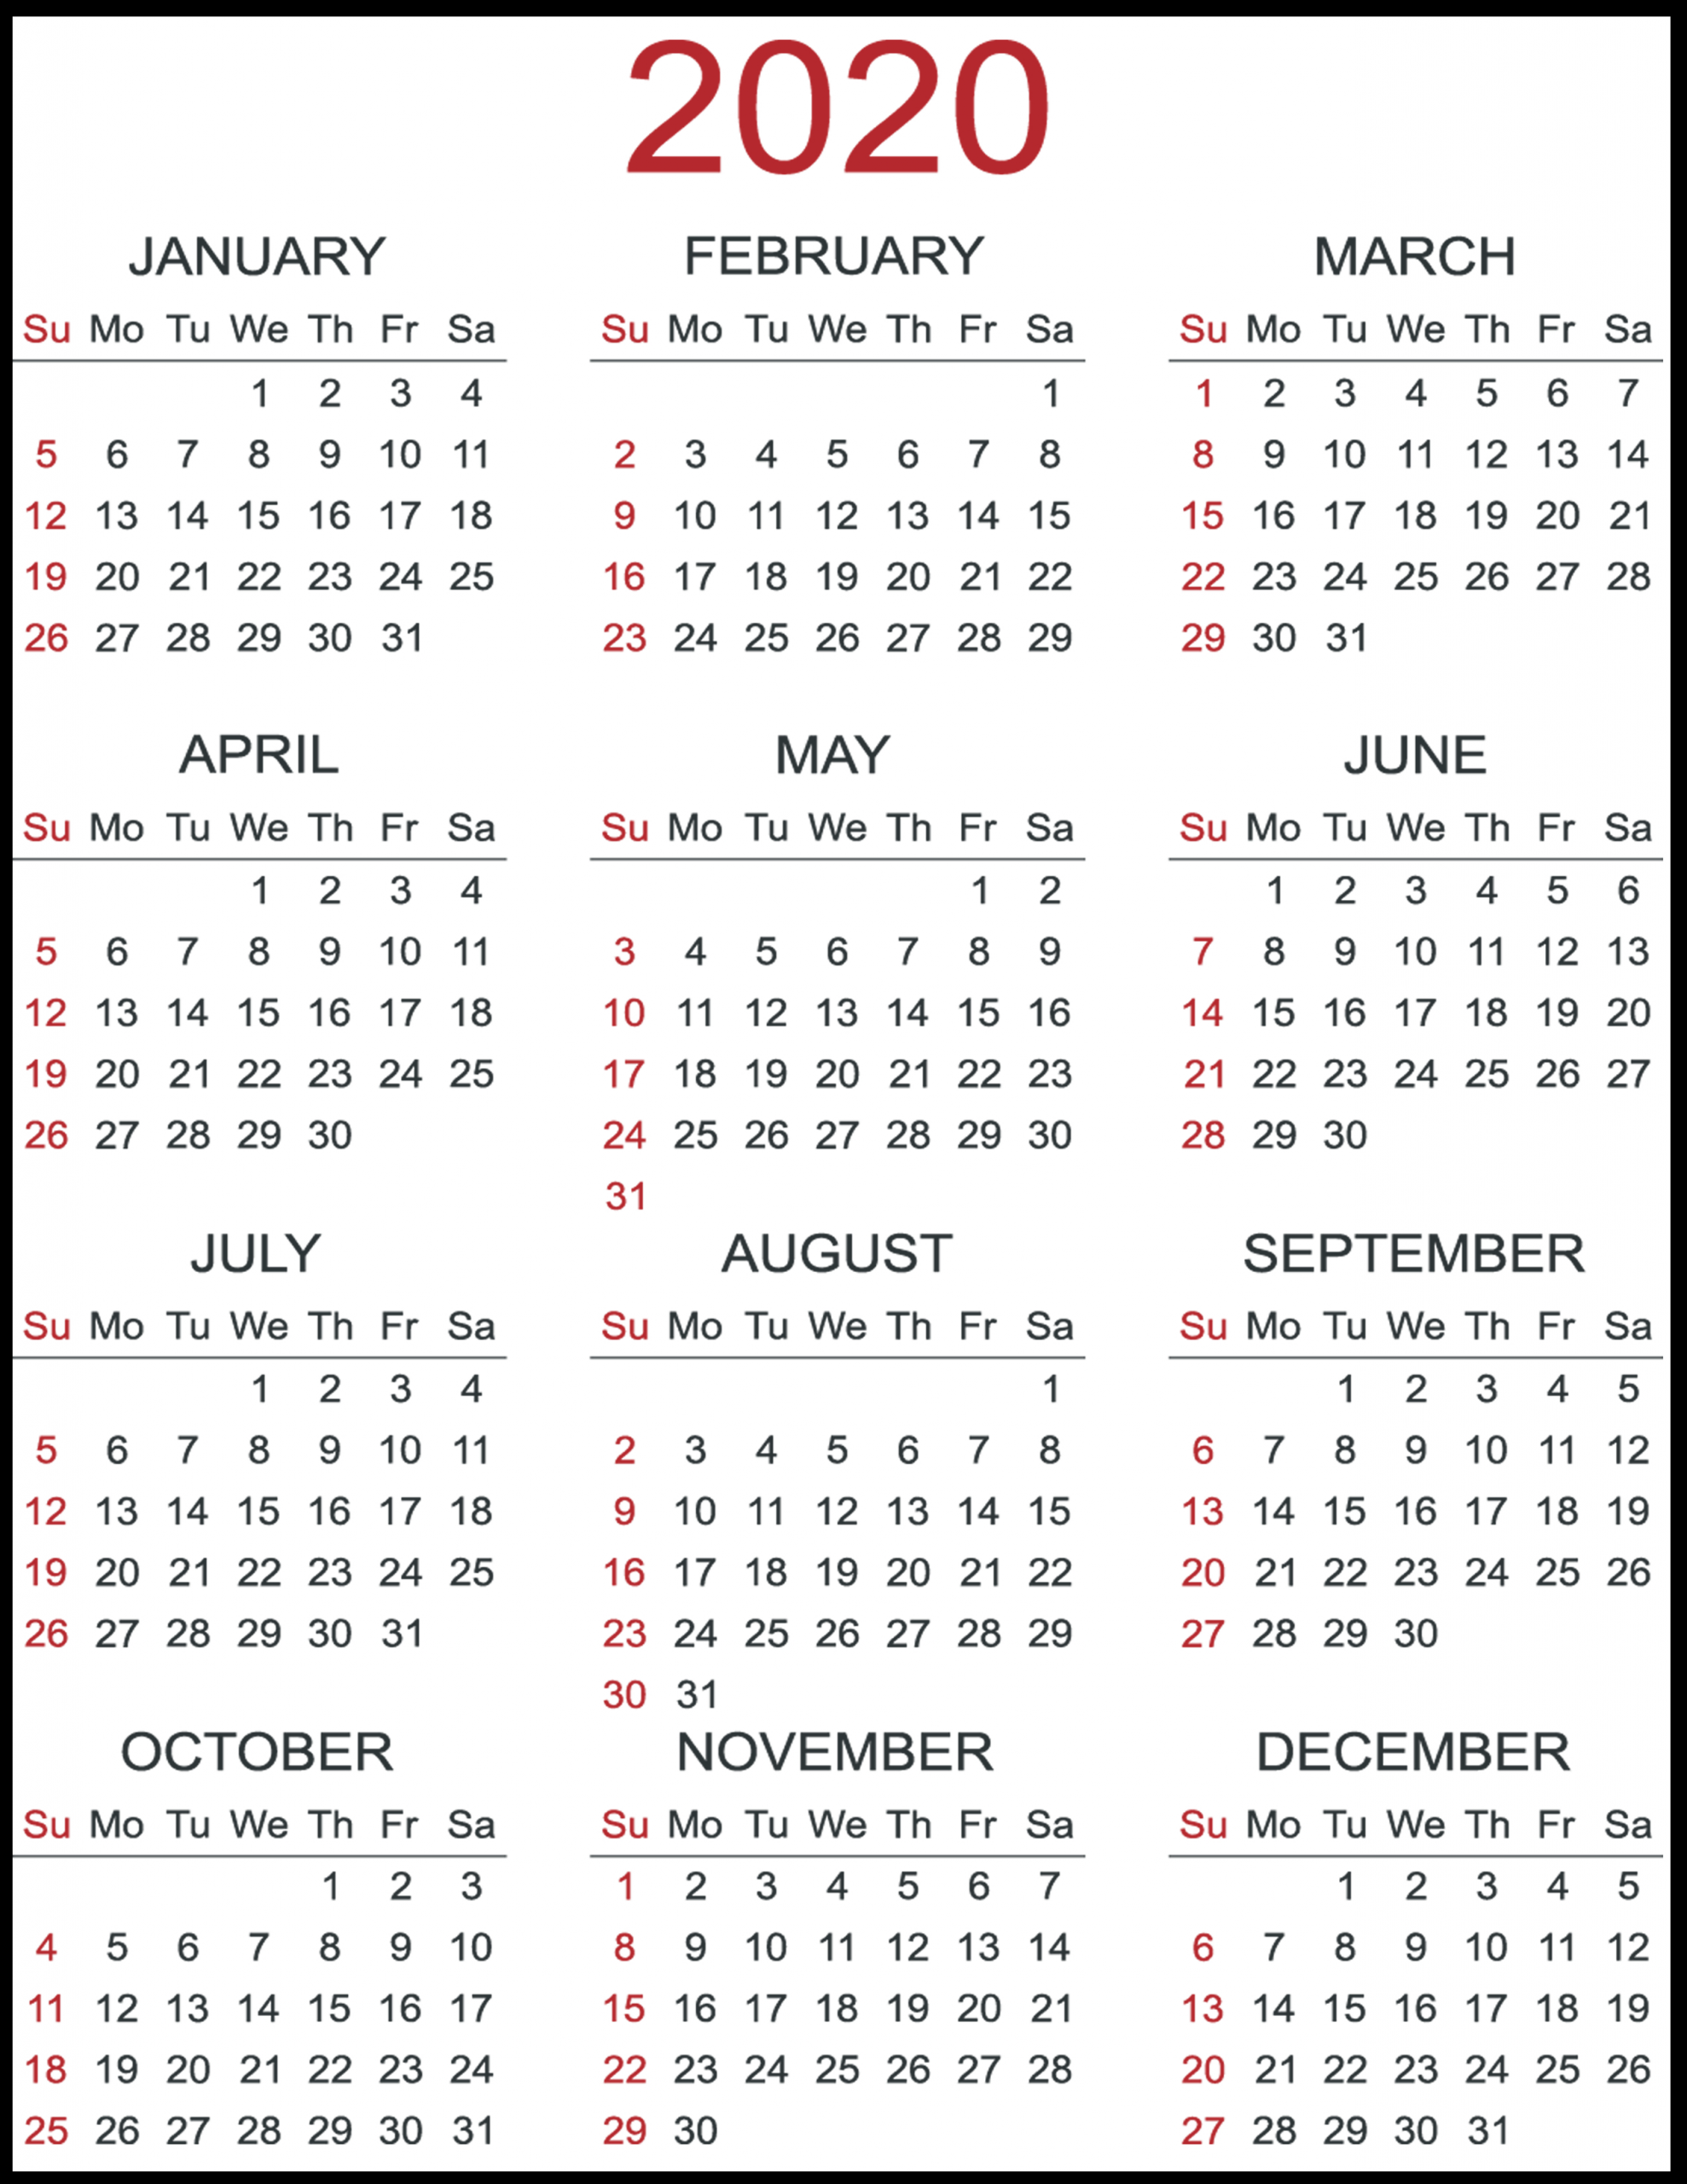 2020 Calendar Printable Yearly - Togo.wpart.co